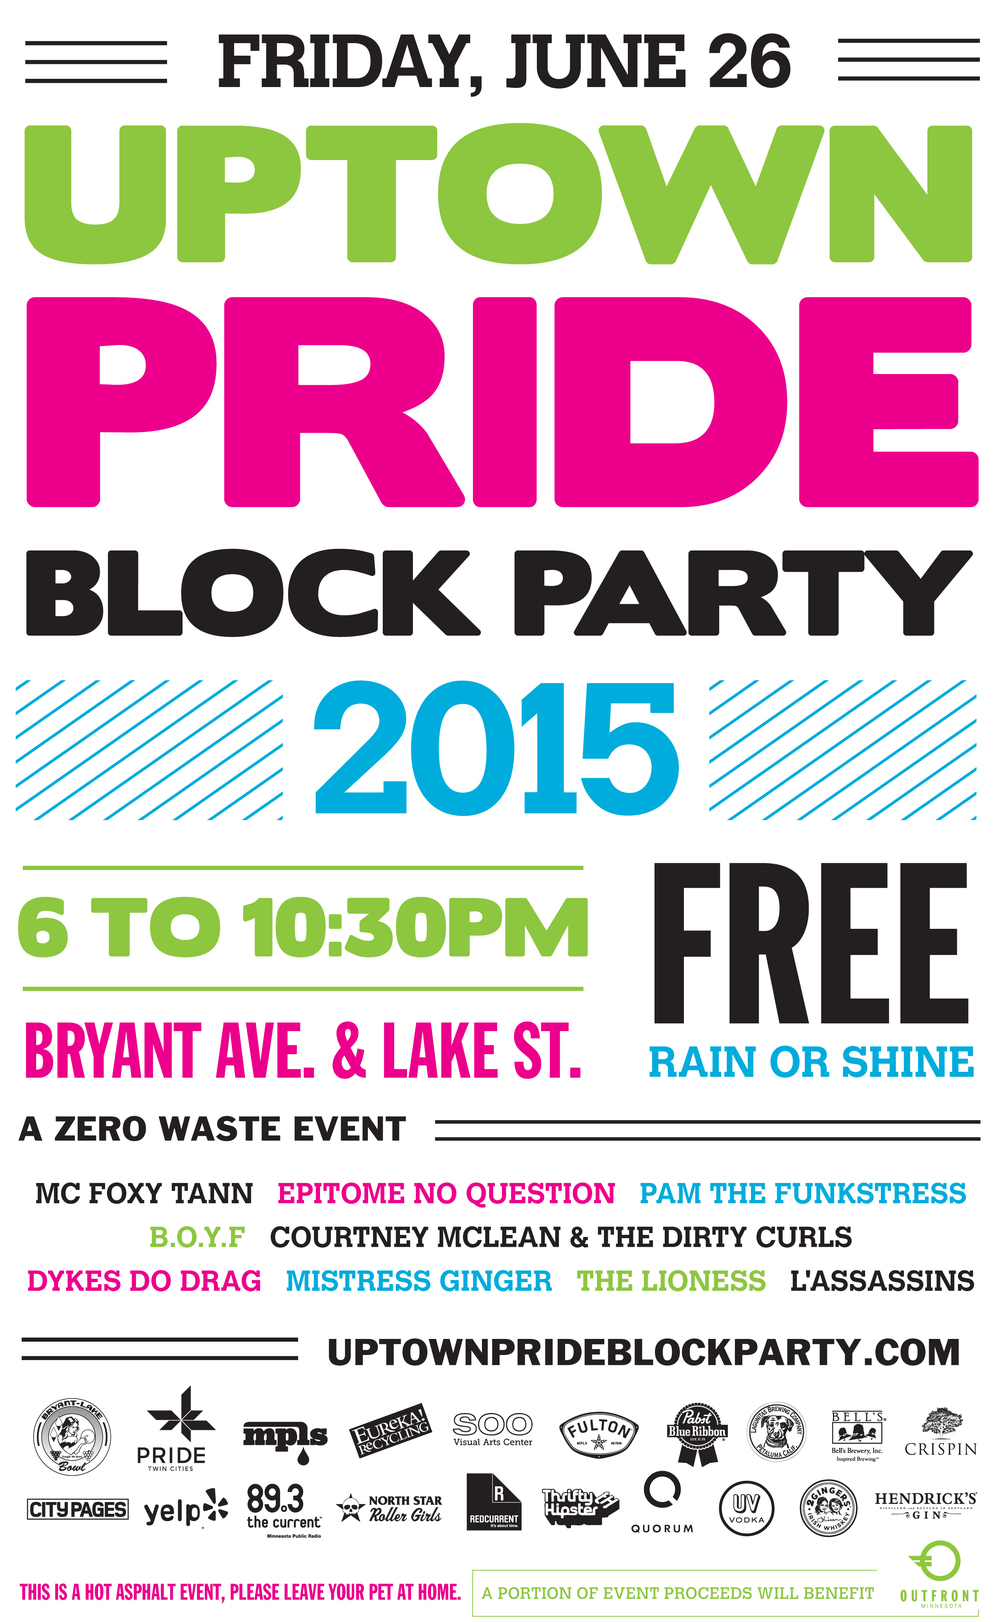 6/26/15  |  6-10:30pm  |  Bryant Ave & Lake St  |  FREE  |  Rain or Shine